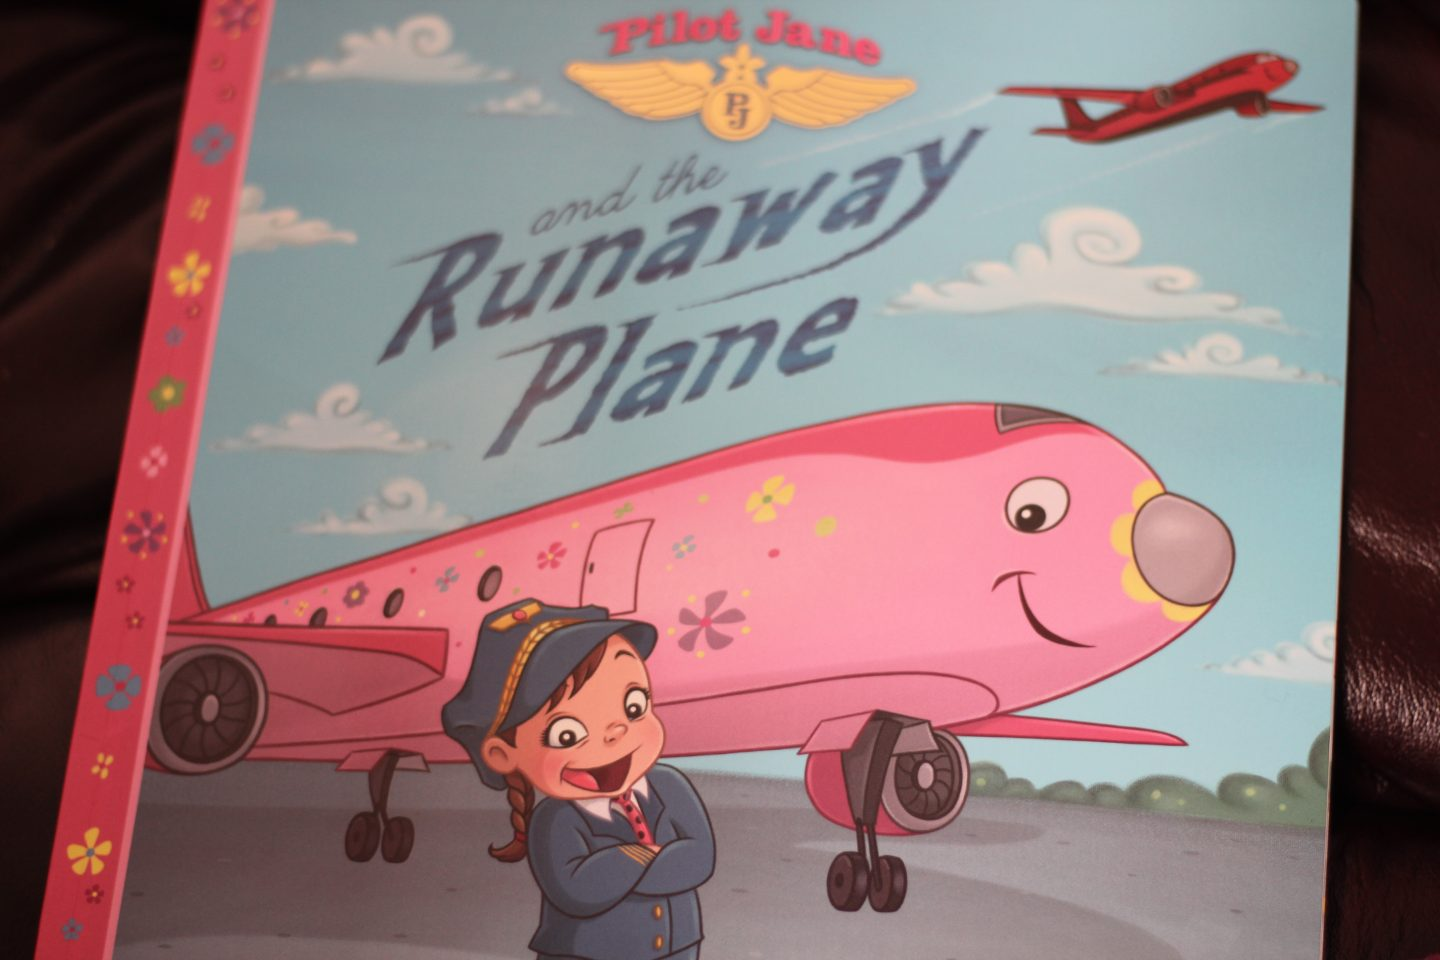 pilot jane and the runaway plane book review